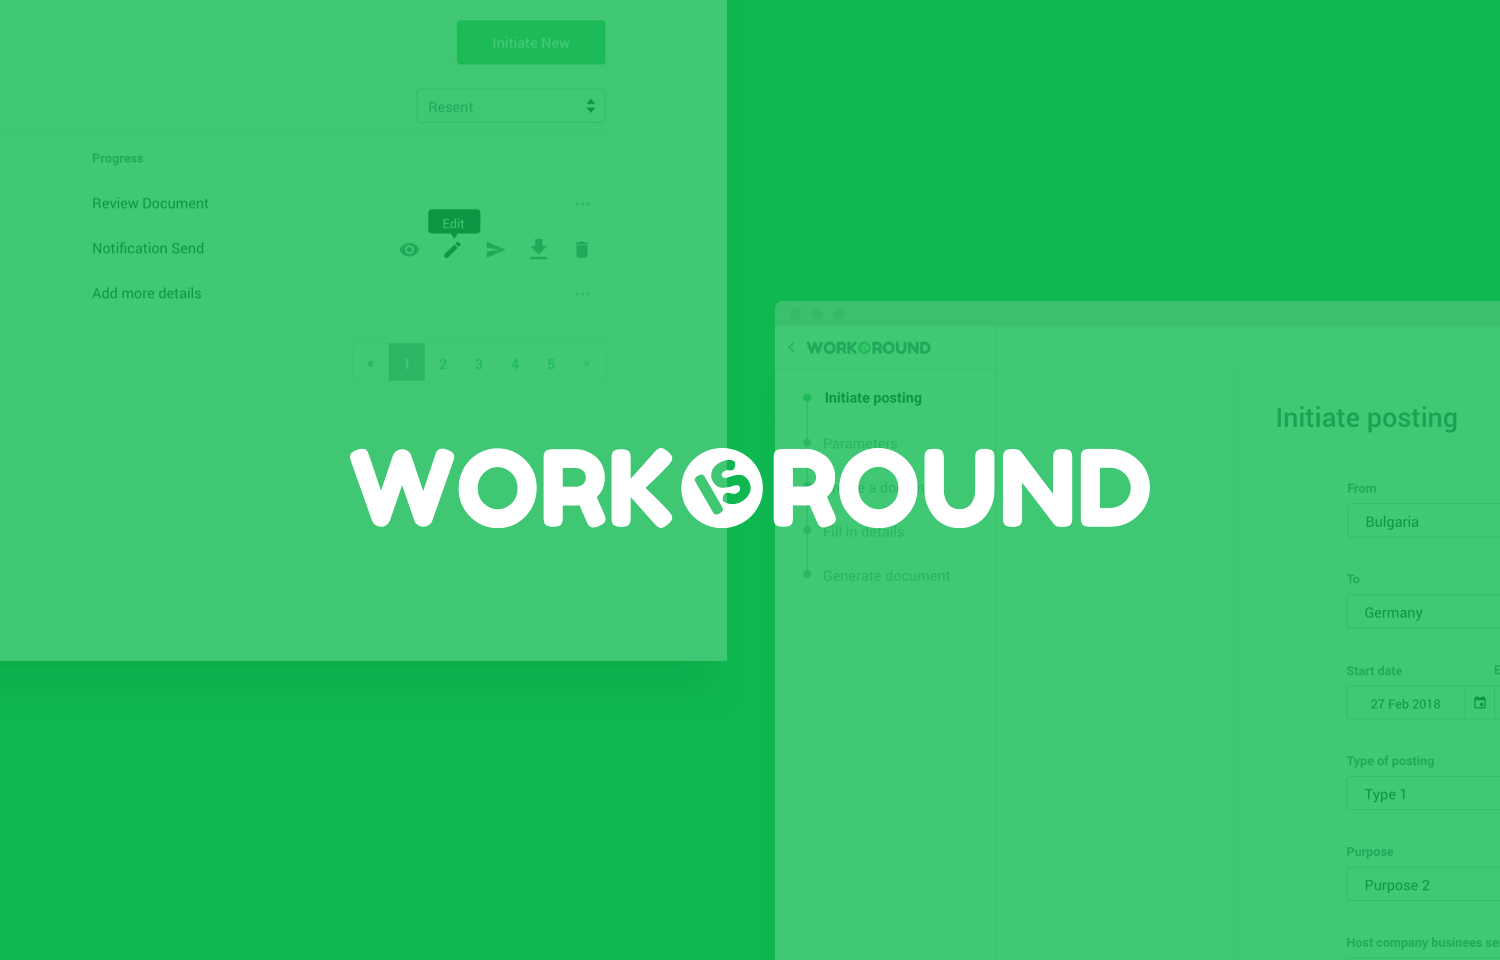 Work is round  HR Web App